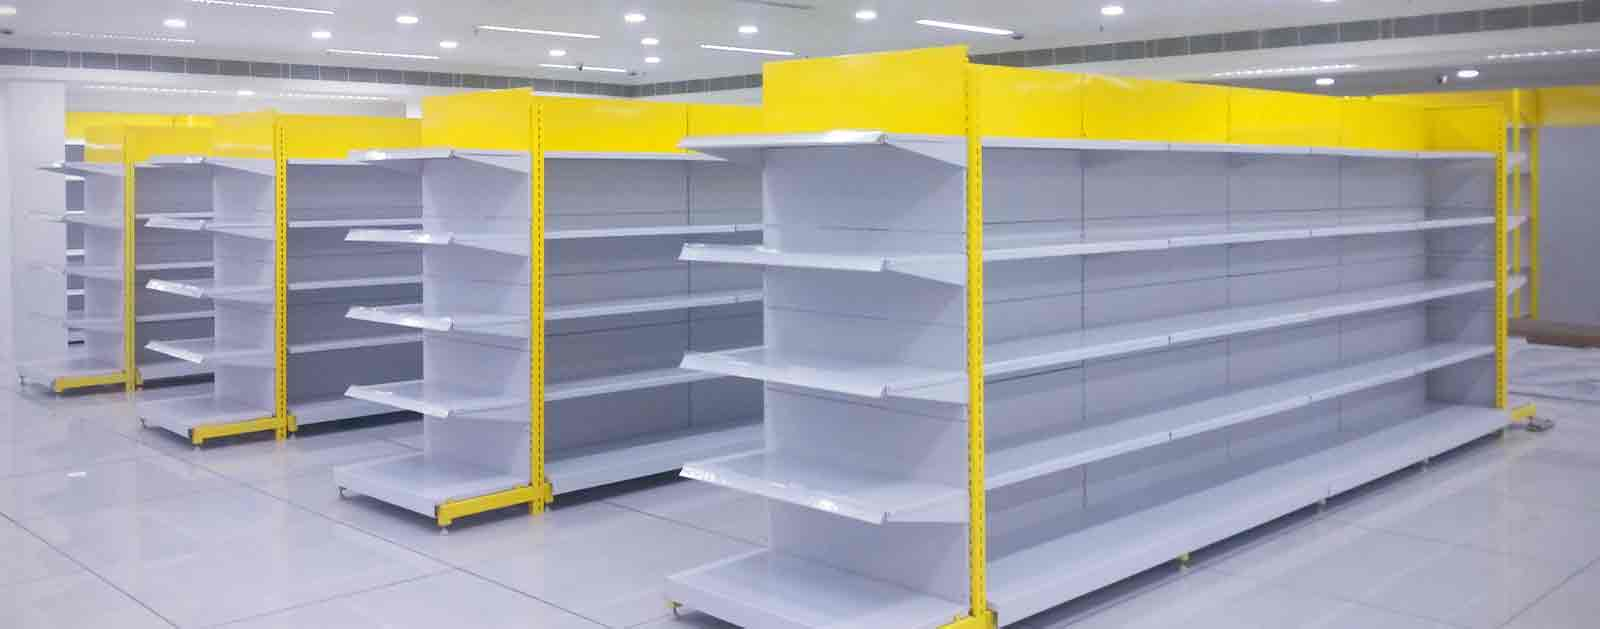 Supermarket Display Rack Manufacturers In Ibrahimpatnam